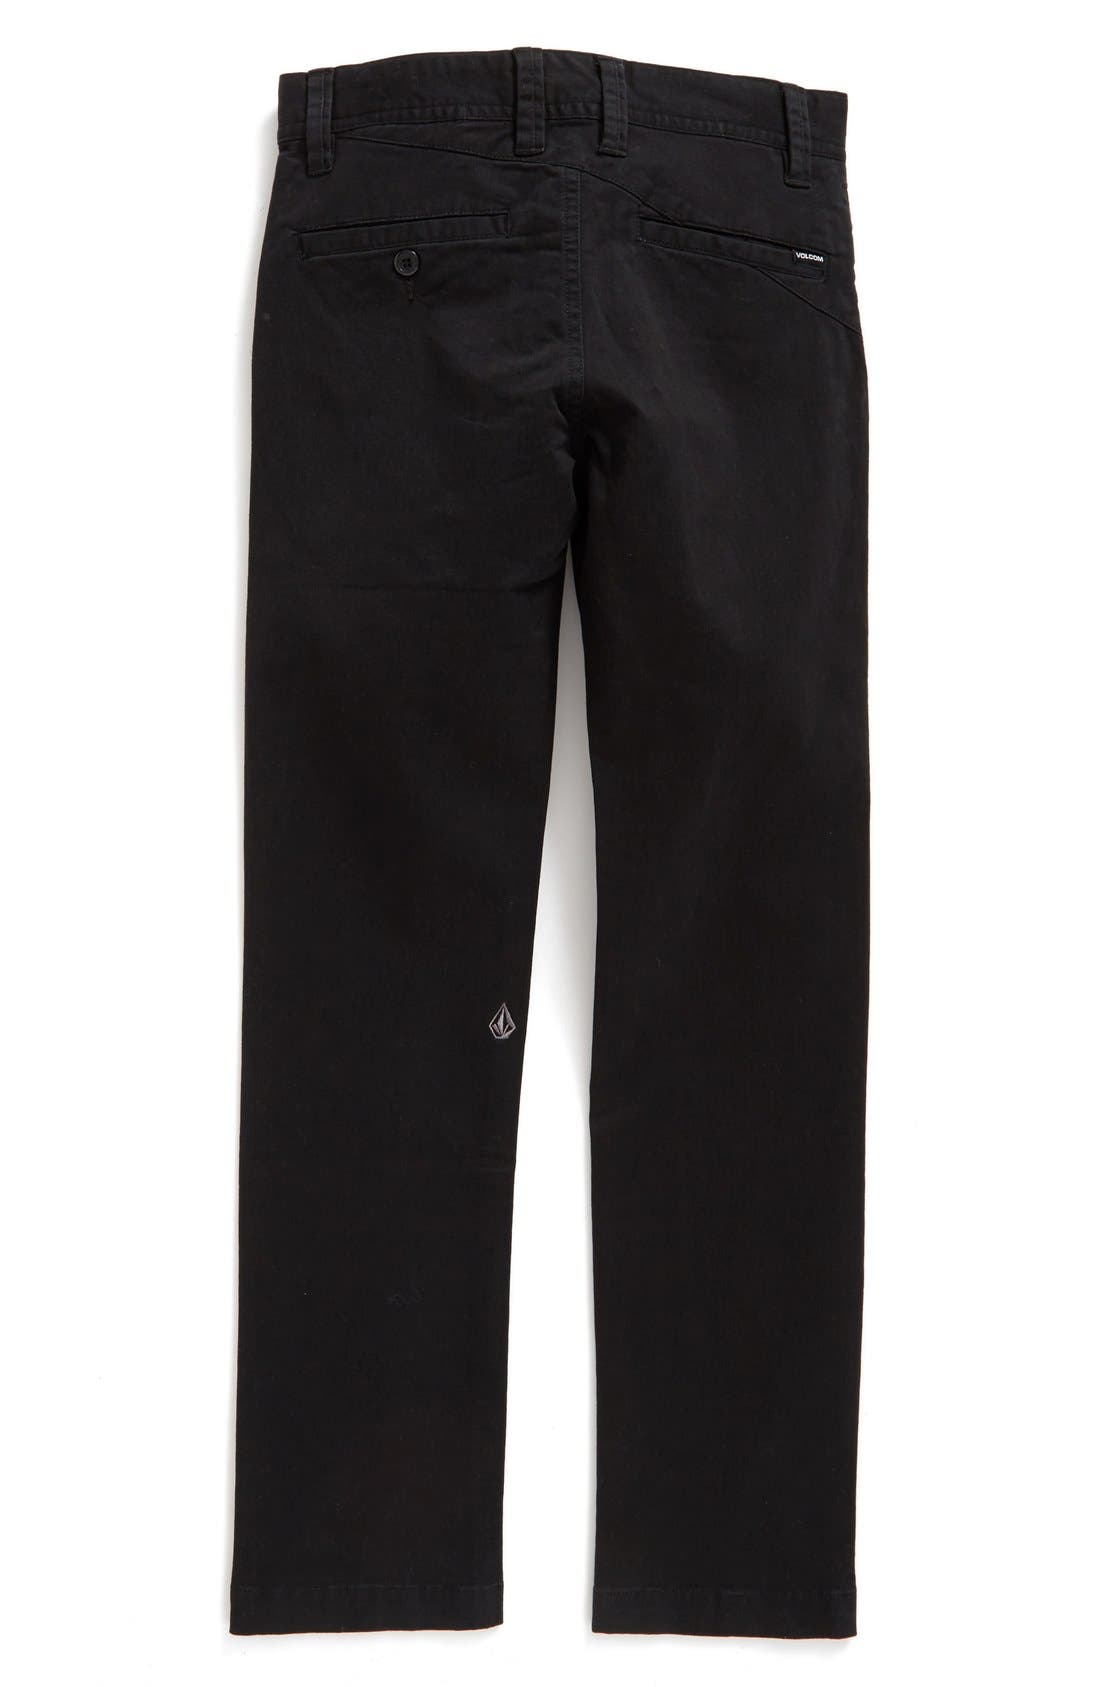 Alternate Image 2  - Volcom Slim Fit Stretch Chinos (Toddler Boys, Little Boys & Big Boys)